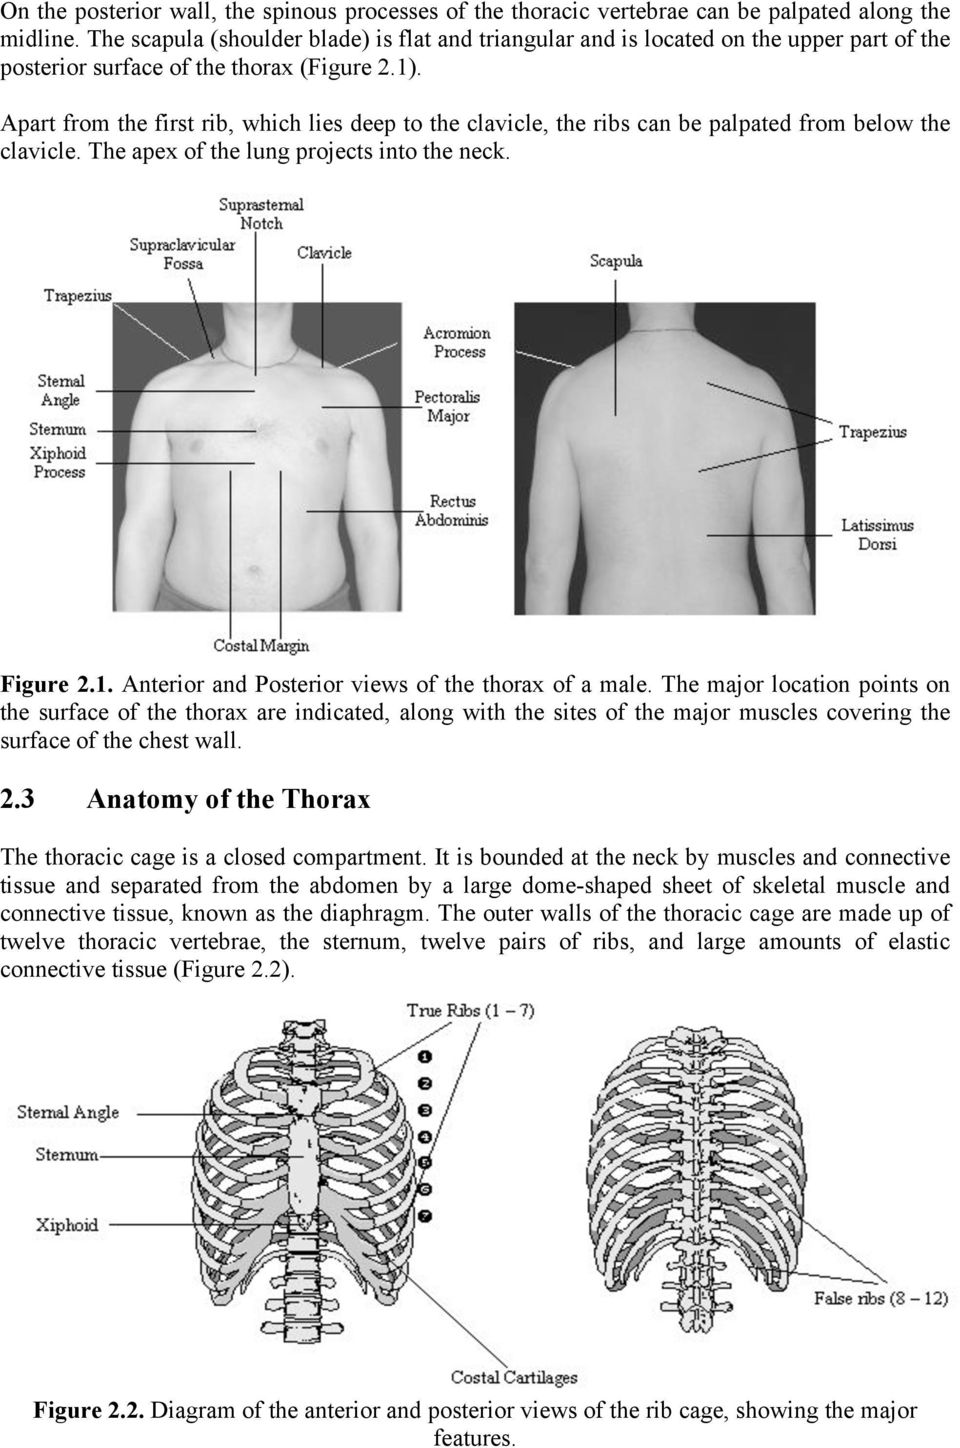 Apart from the first rib, which lies deep to the clavicle, the ribs can be palpated from below the clavicle. The apex of the lung projects into the neck. Figure 2.1.